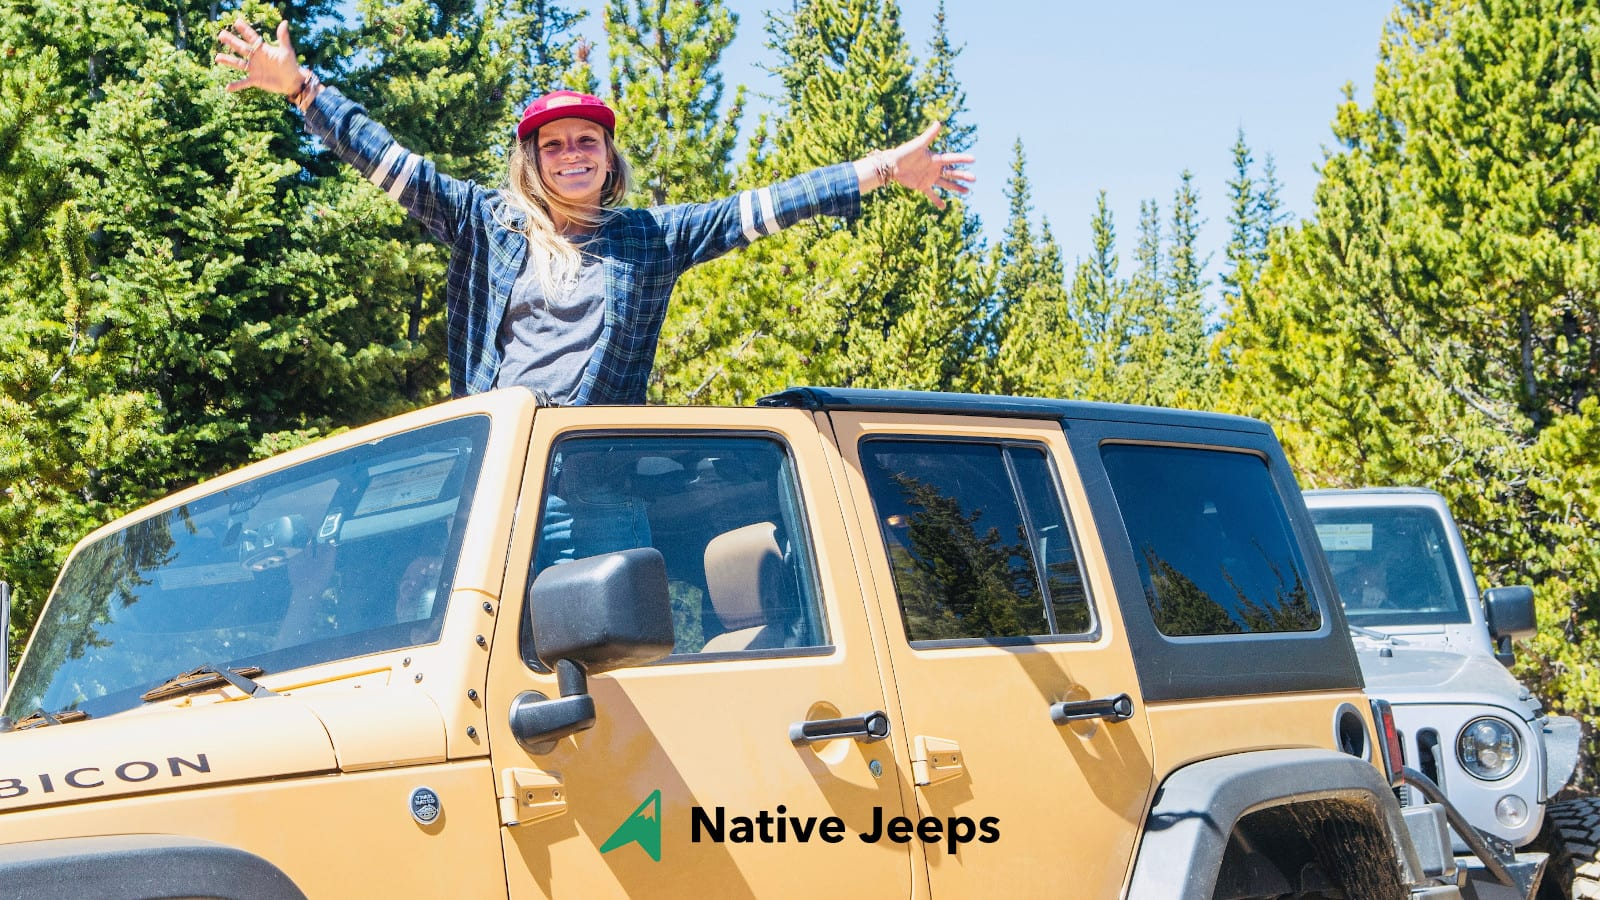 Native Jeeps Colorado Jeep Tour Lady with Hands up out of Jeep